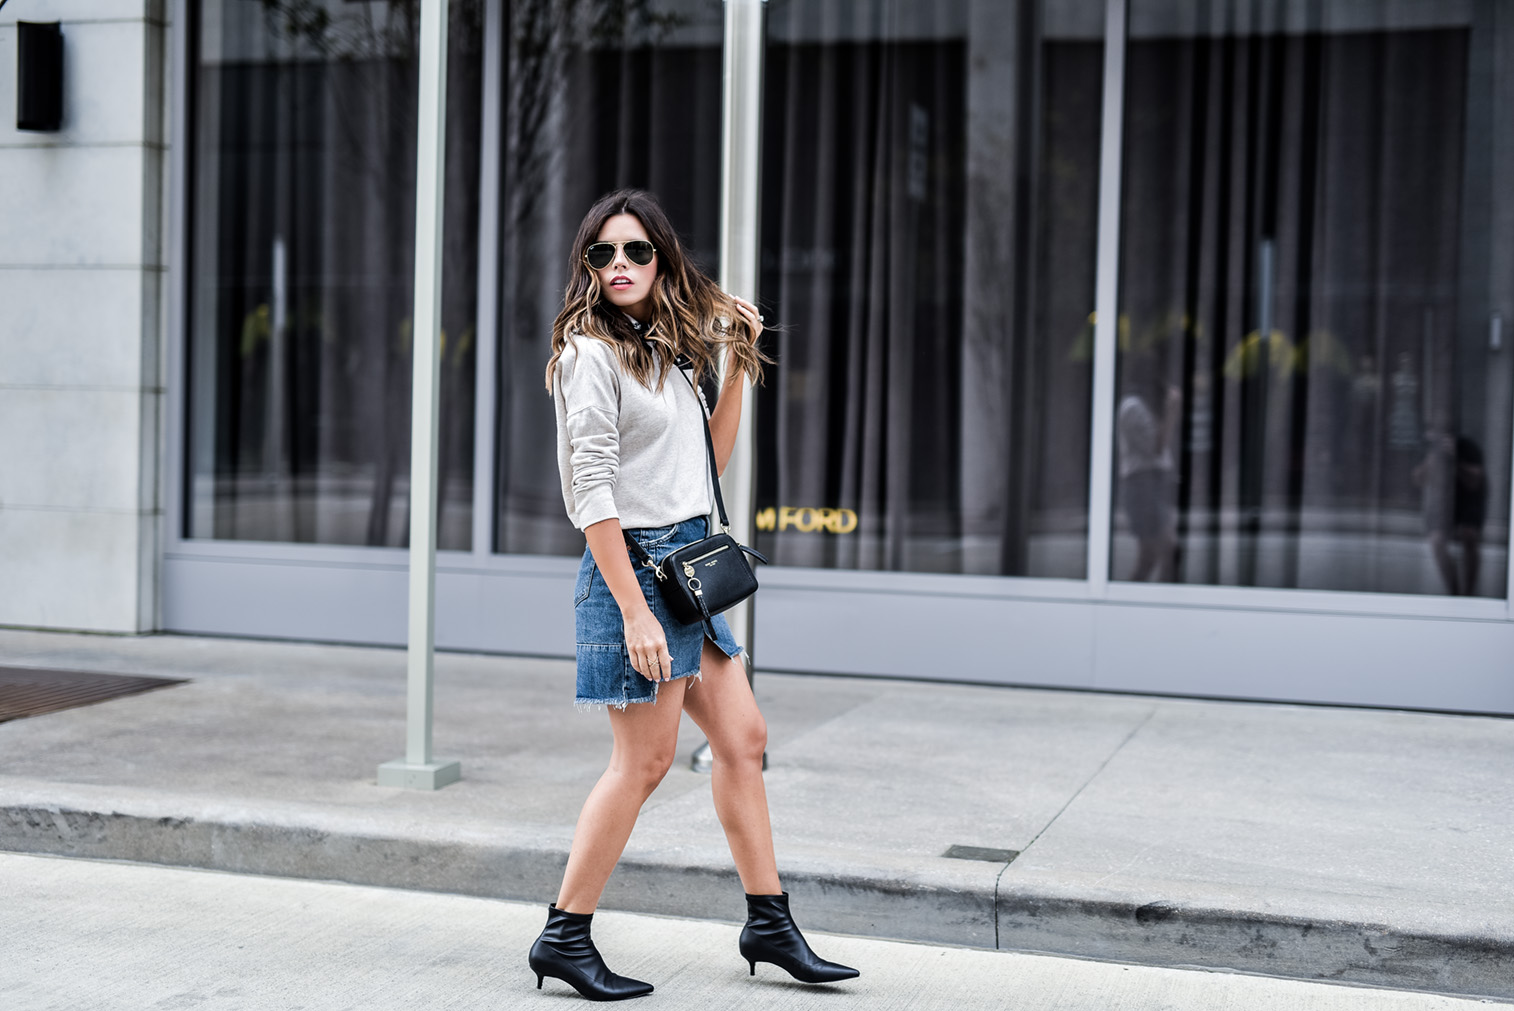 Denim skirt styled two ways! Love dressing up a denim skirt with heels and chic accessories, click to read the full article and shop the look! Outfit ideas for school, outfit ideas, streetstyle outfits